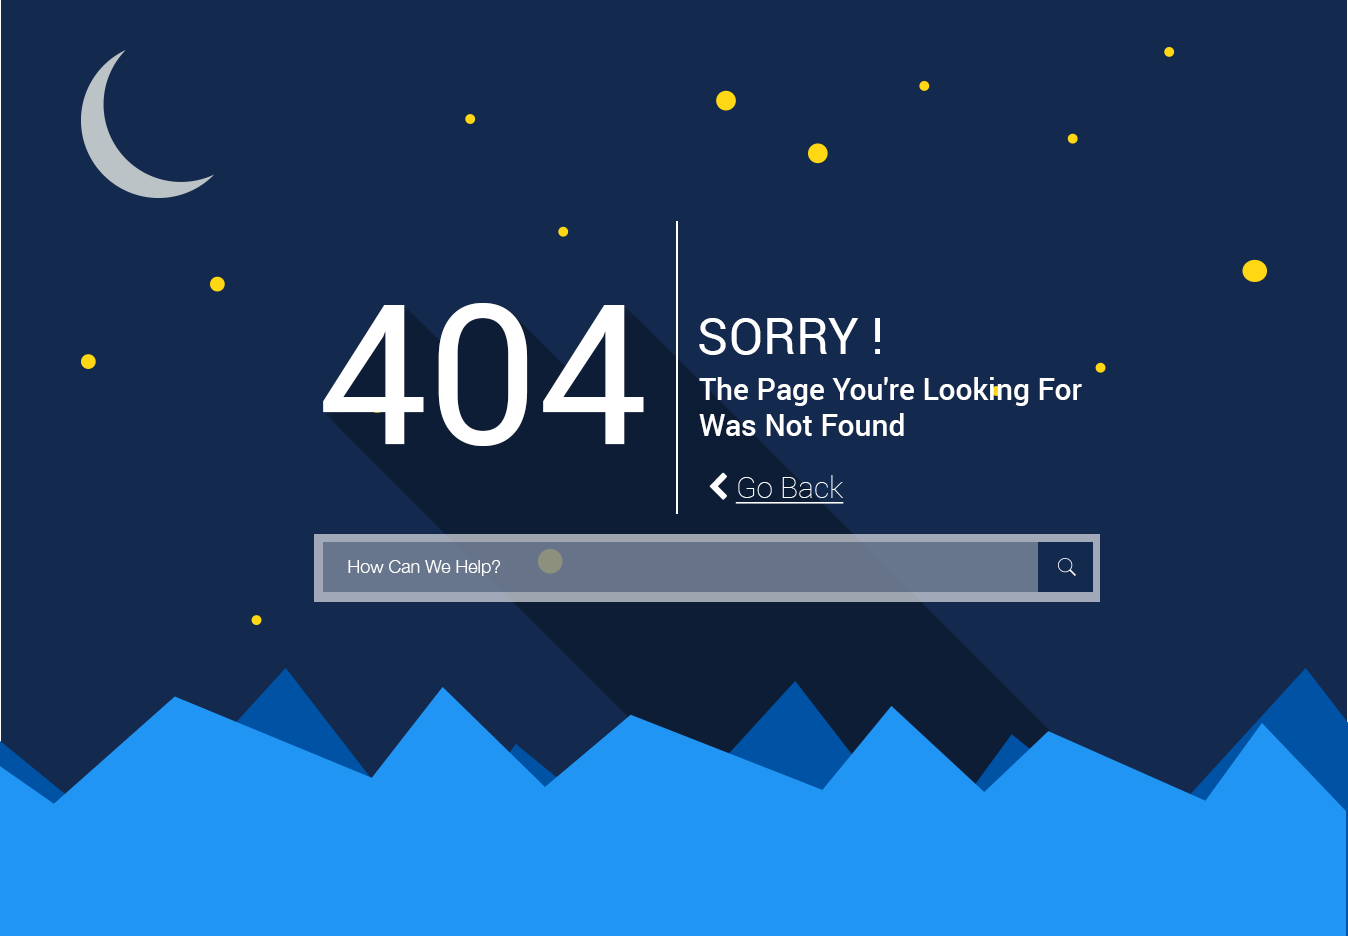 drupal 404 template - material design 404 page website templates on creative